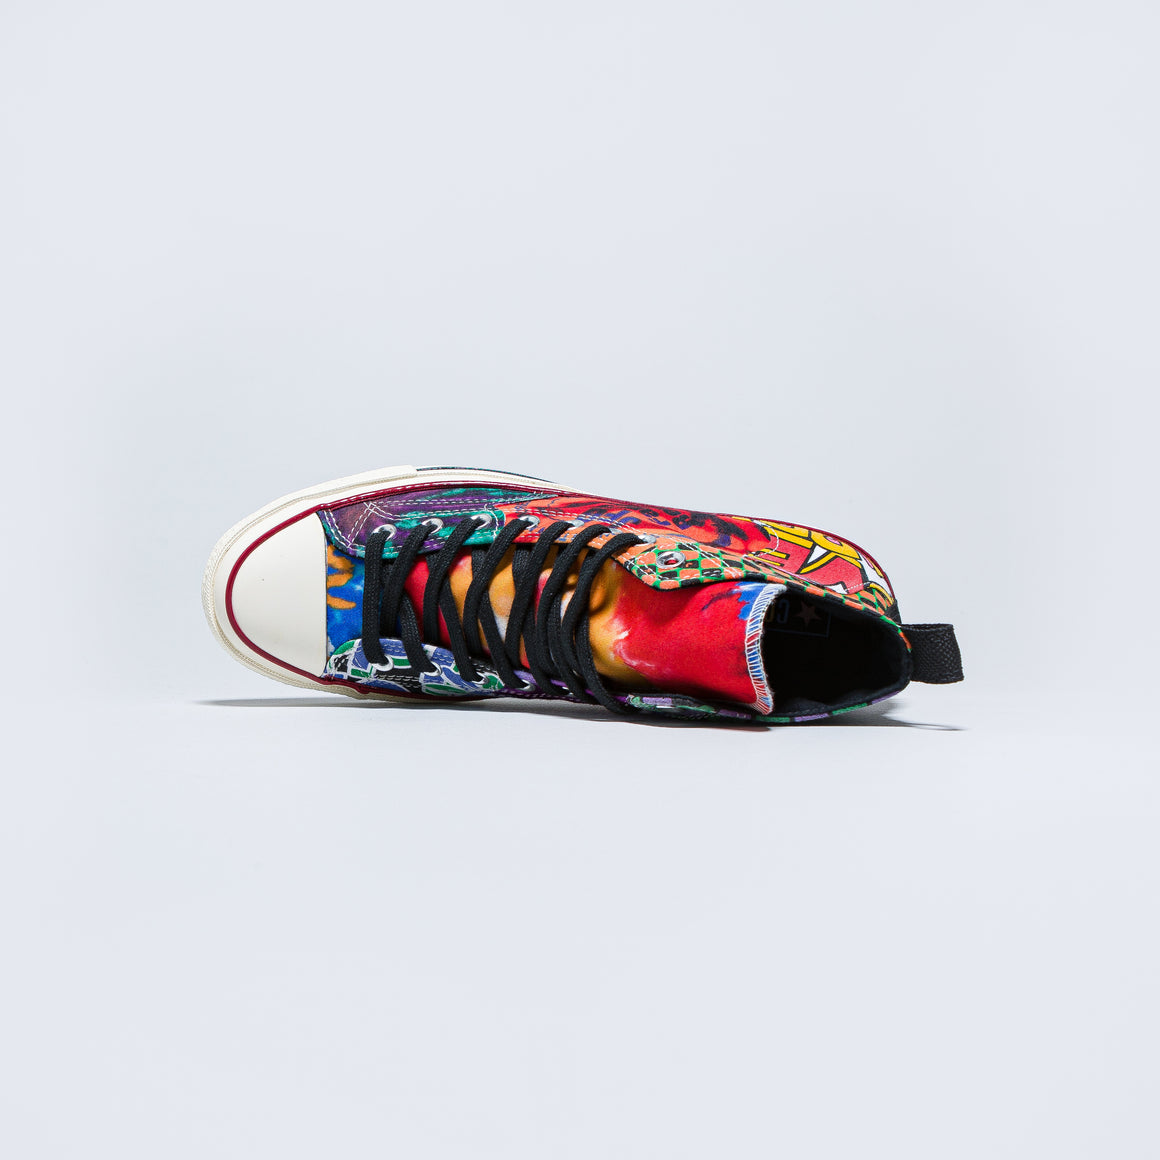 Converse - CT 70 Hi x Joe Fresh Goods - Black/Multi - Up There